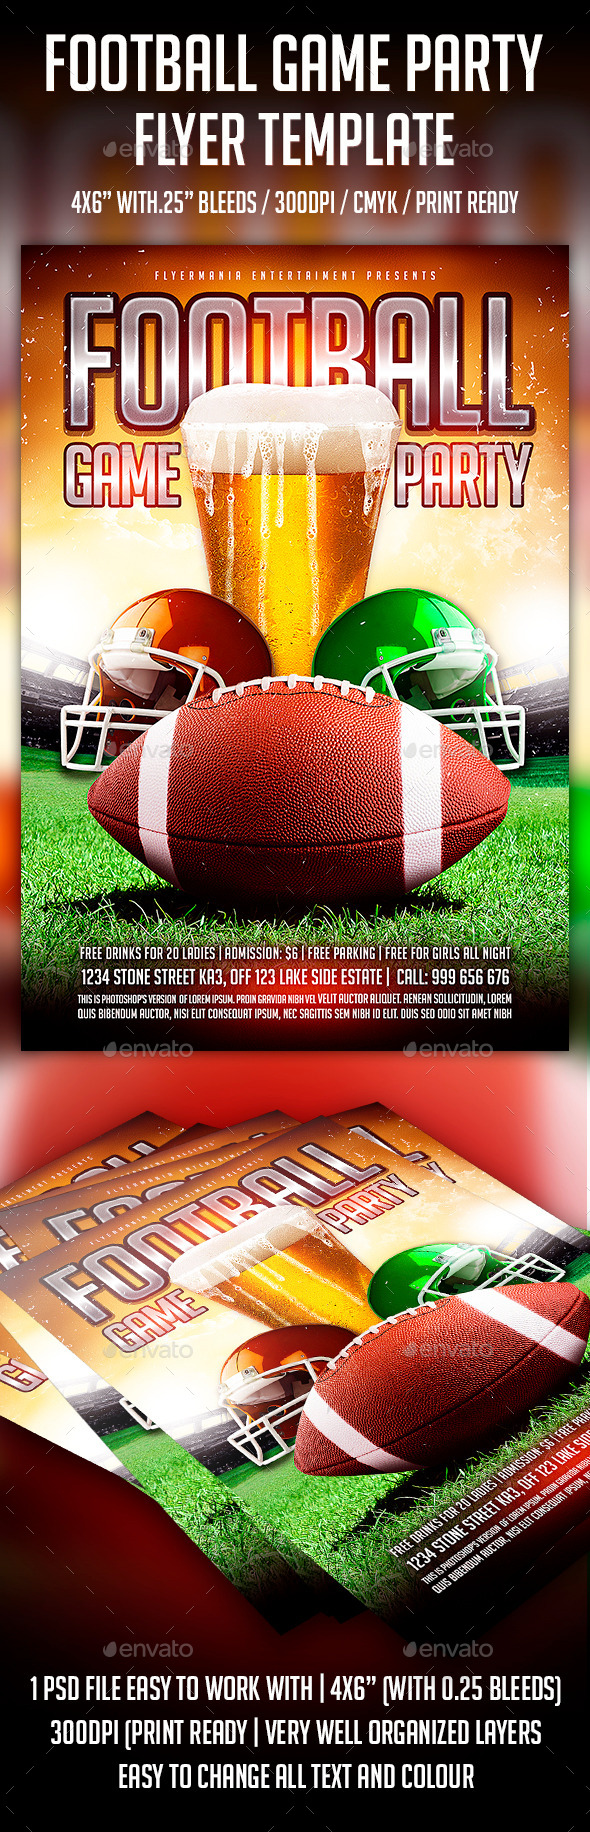 Football Game Party Flyer Template - Flyers Print Templates